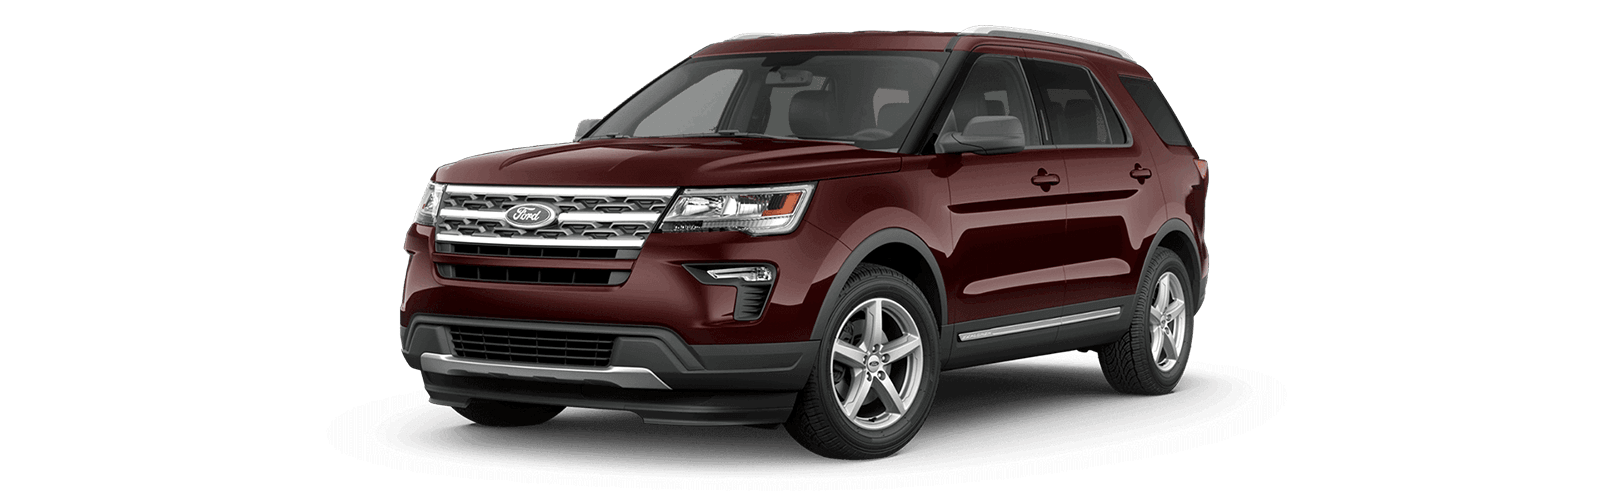 2018 Ford Explorer Info, Details | River View Ford in Oswego